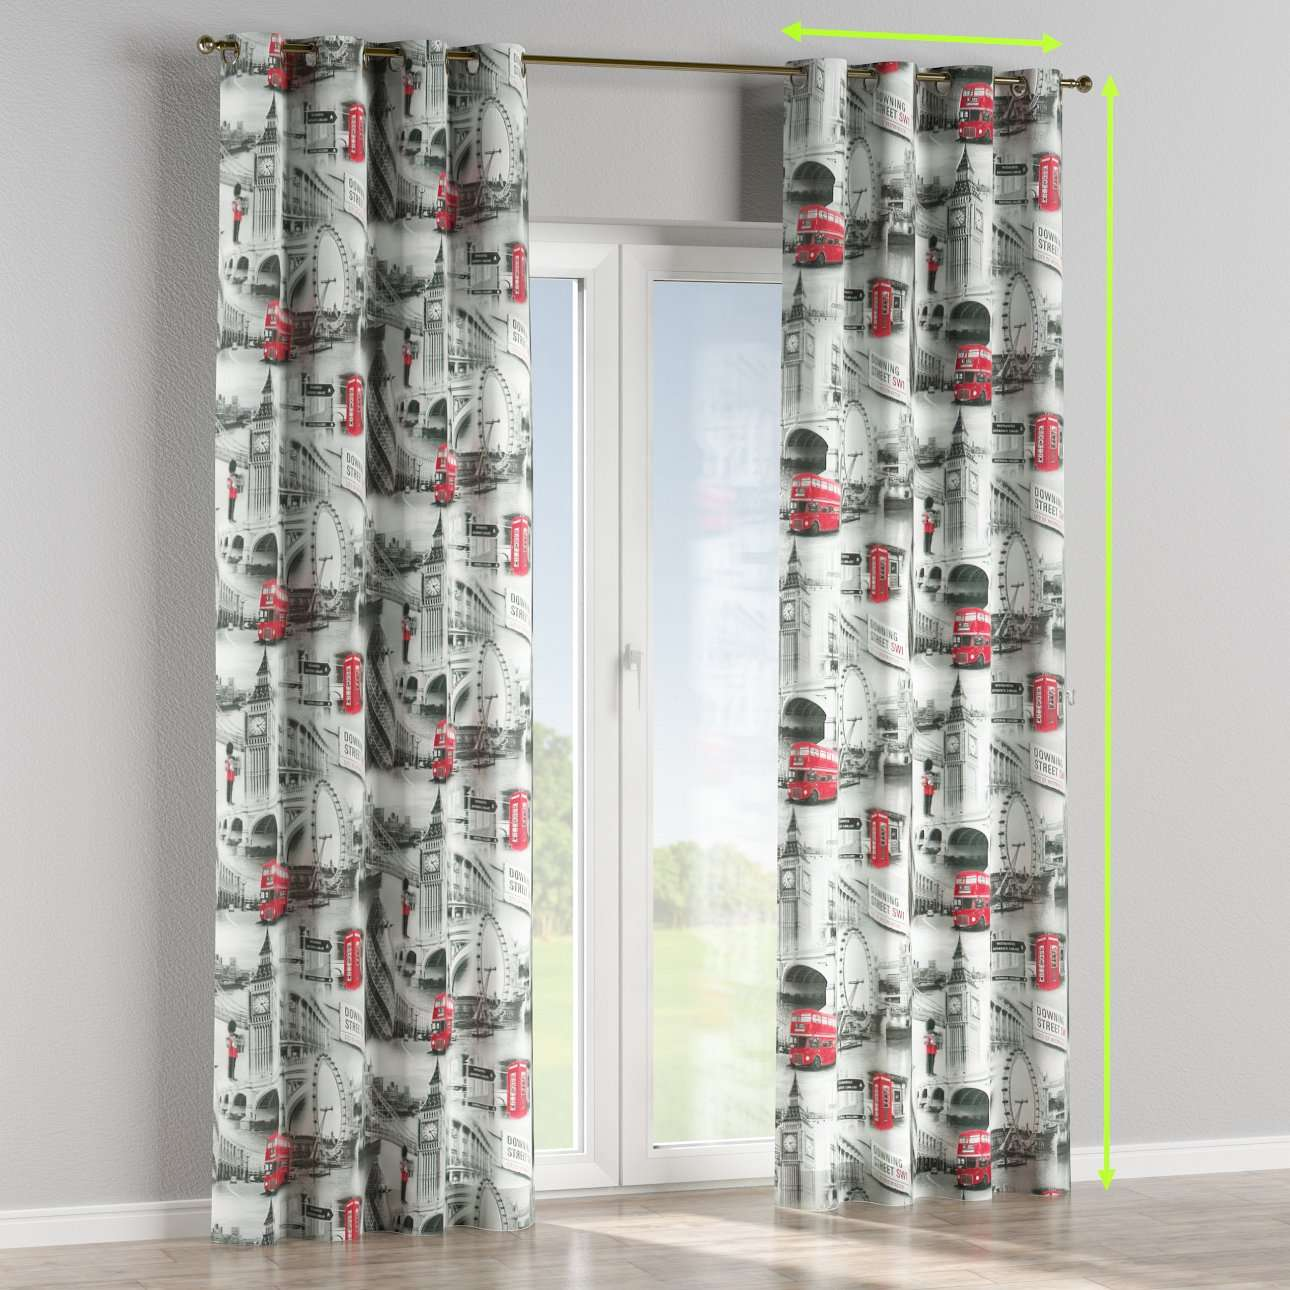 Eyelet curtains in collection Comic Book & Geo Prints, fabric: 111-04